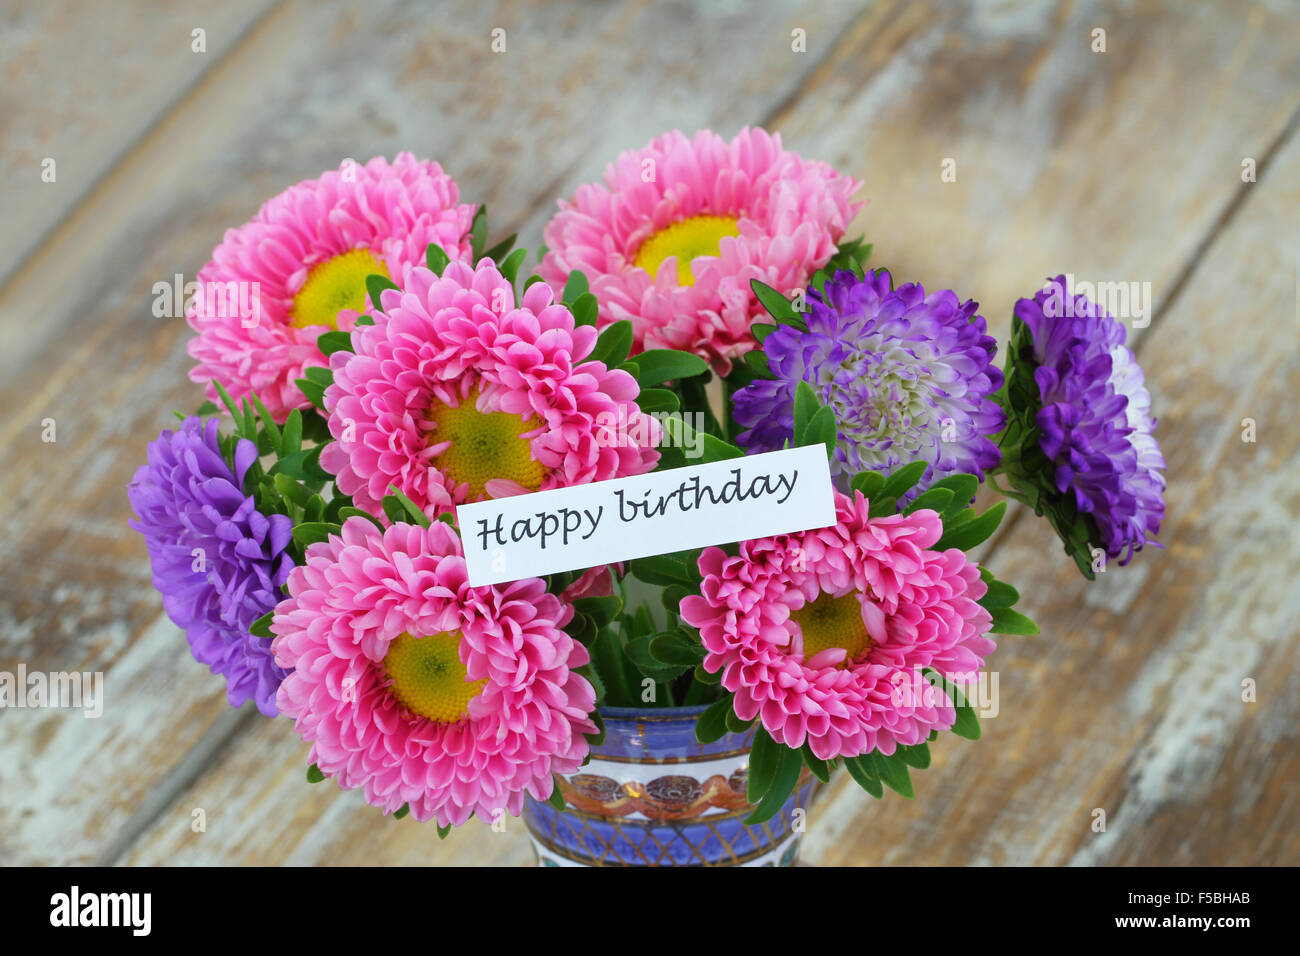 Free Images Of Birthday Flowers Best Birthday Flowers Images Free